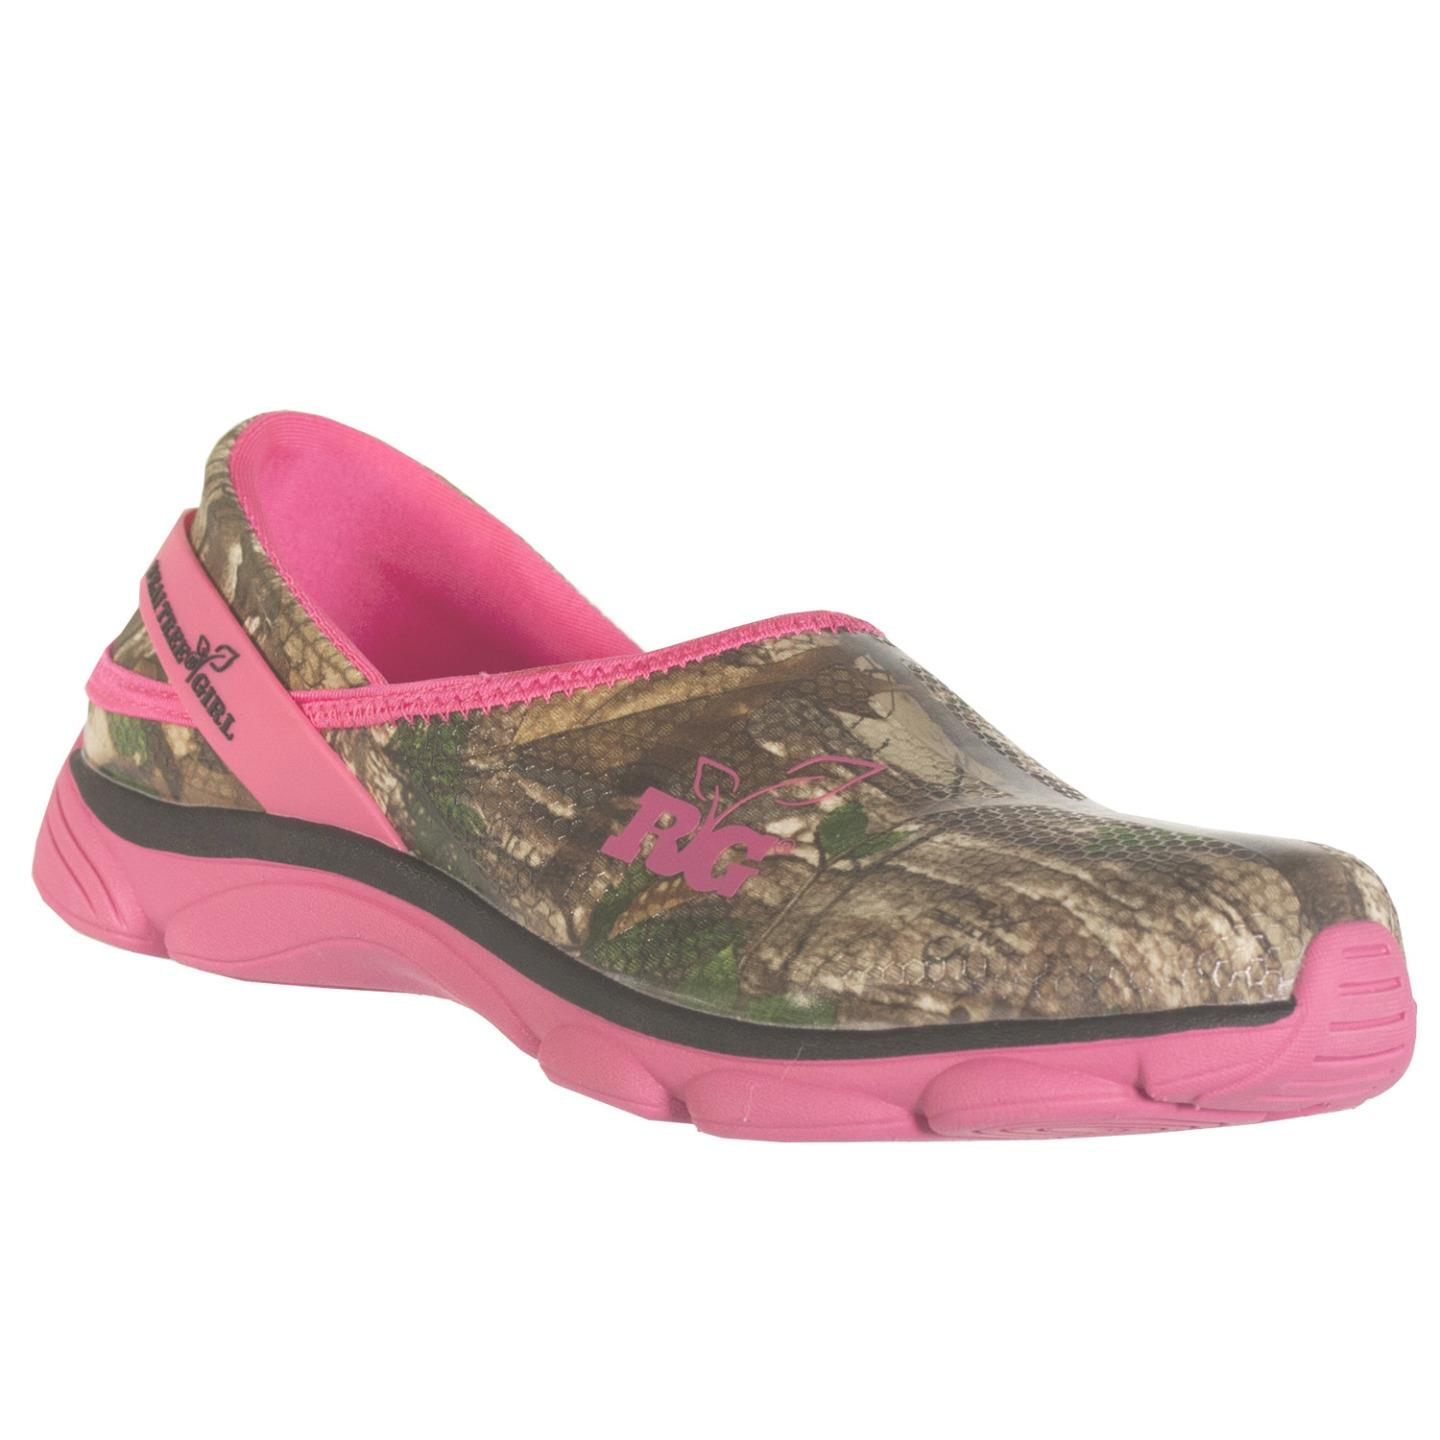 realtree outfitters s lola slip on shoes pink